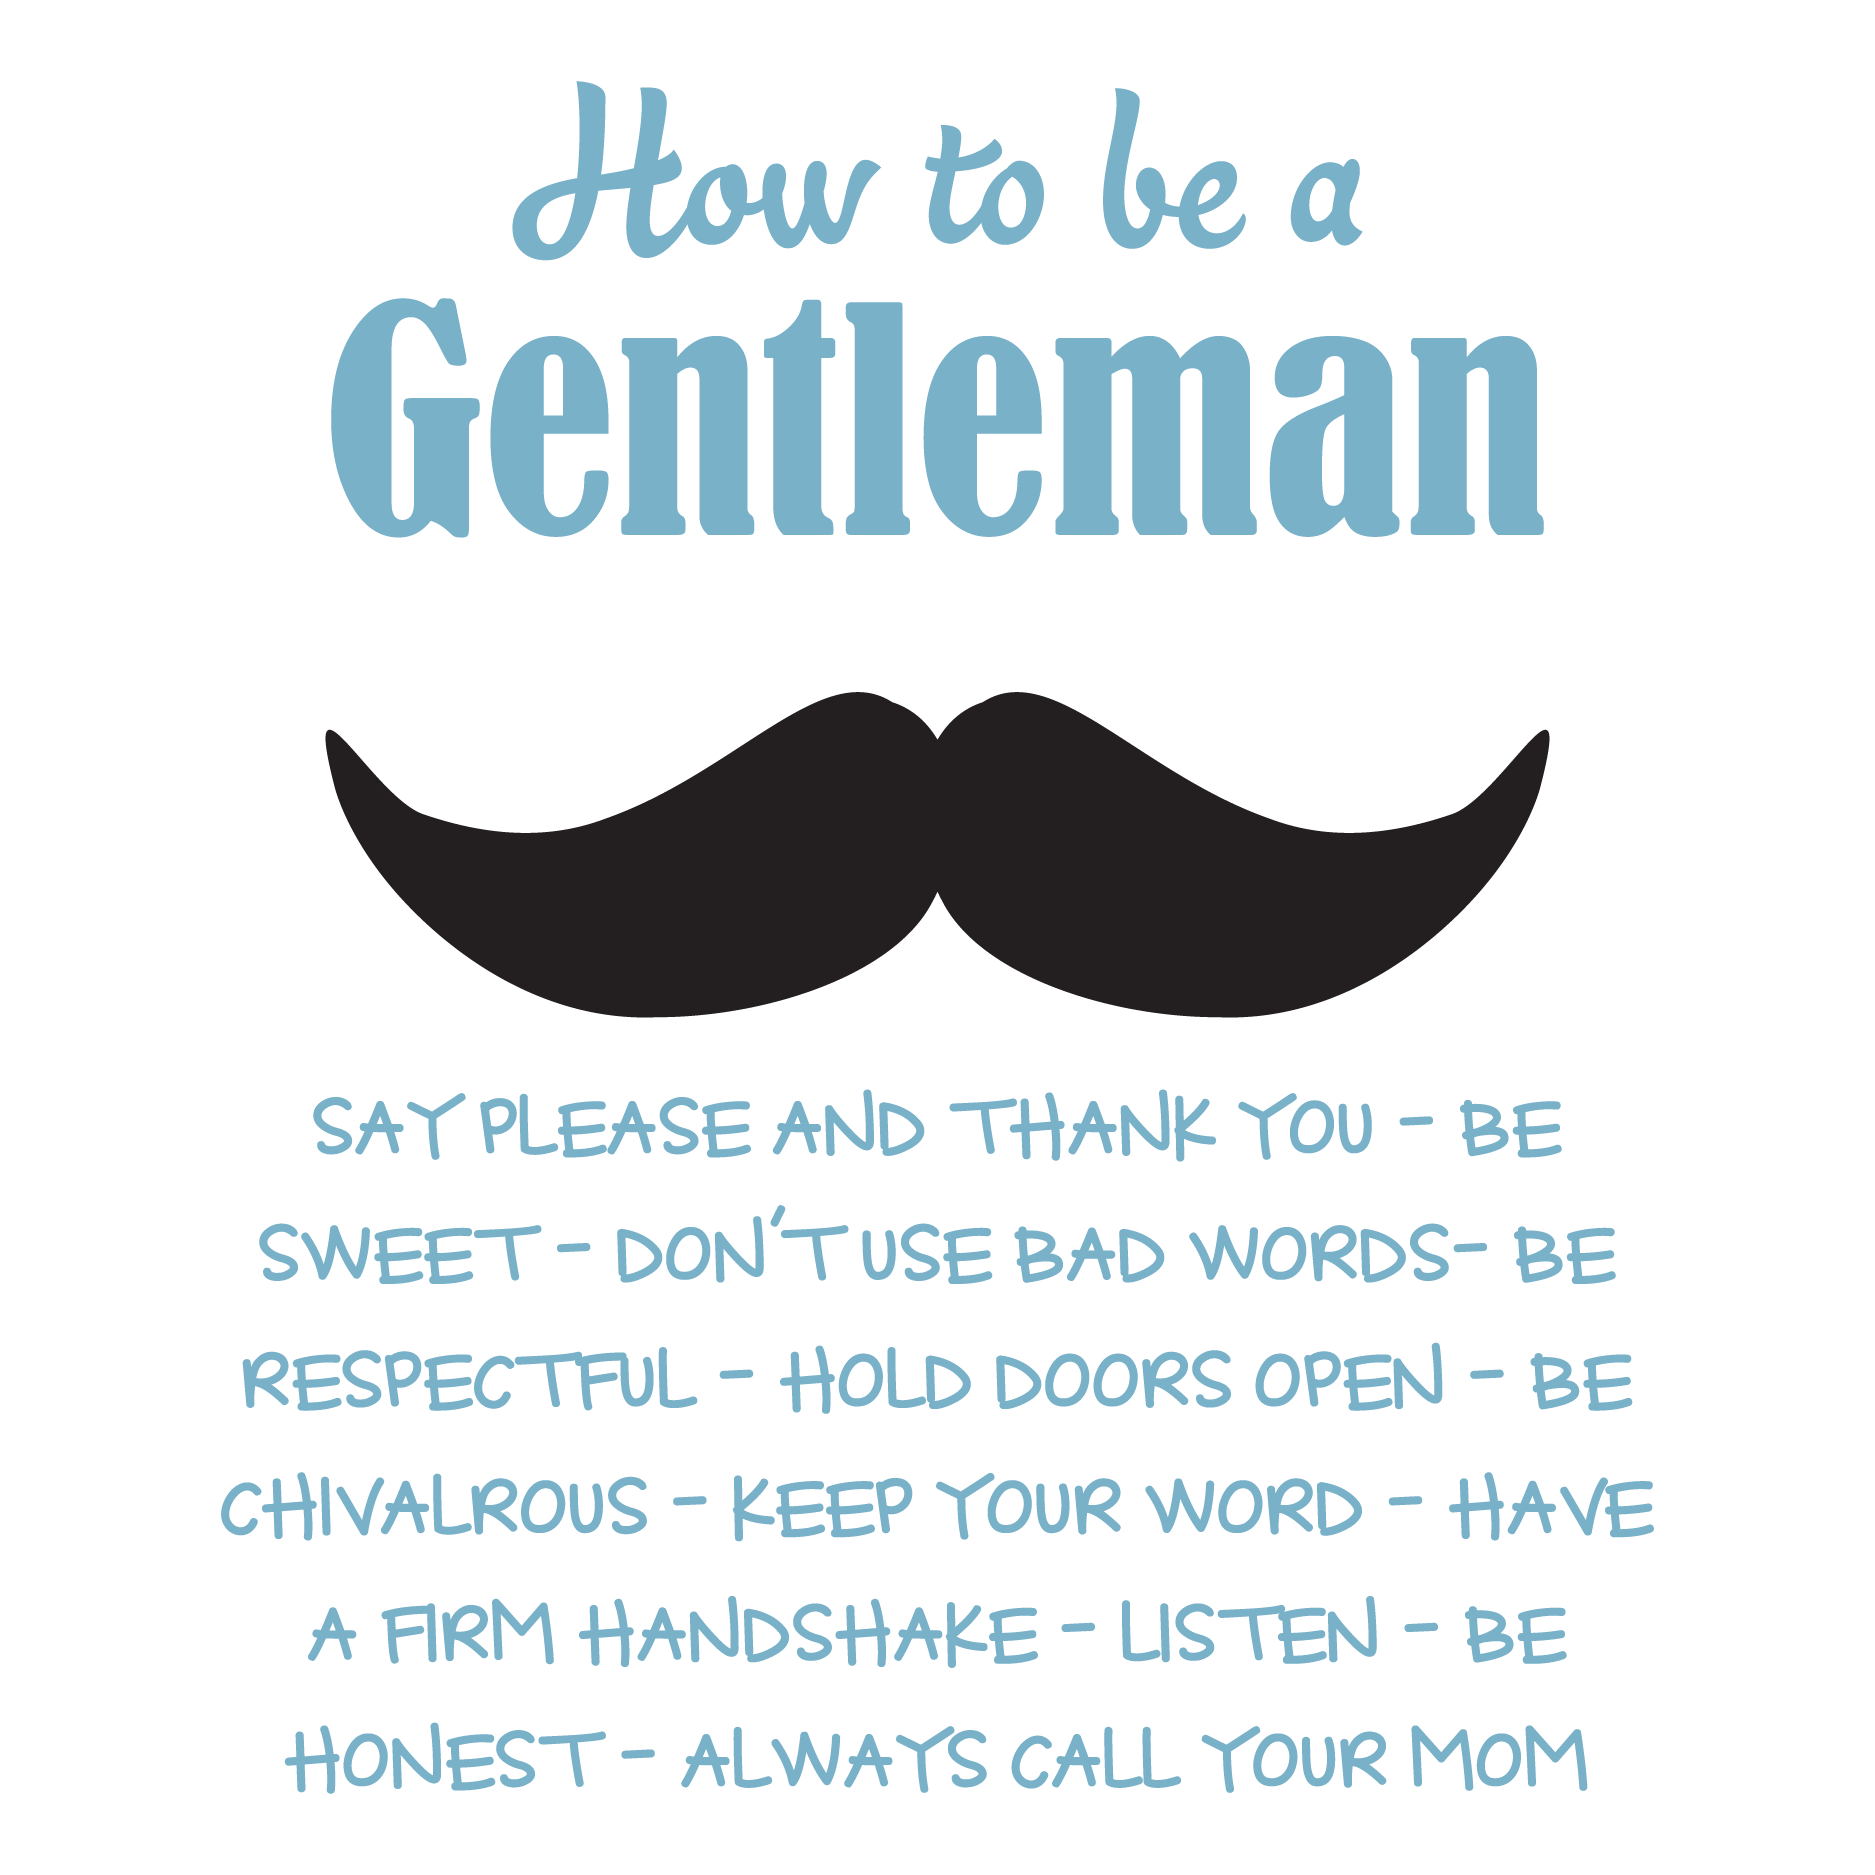 How to be a gentleman rules wall quotes decal wallquotes com